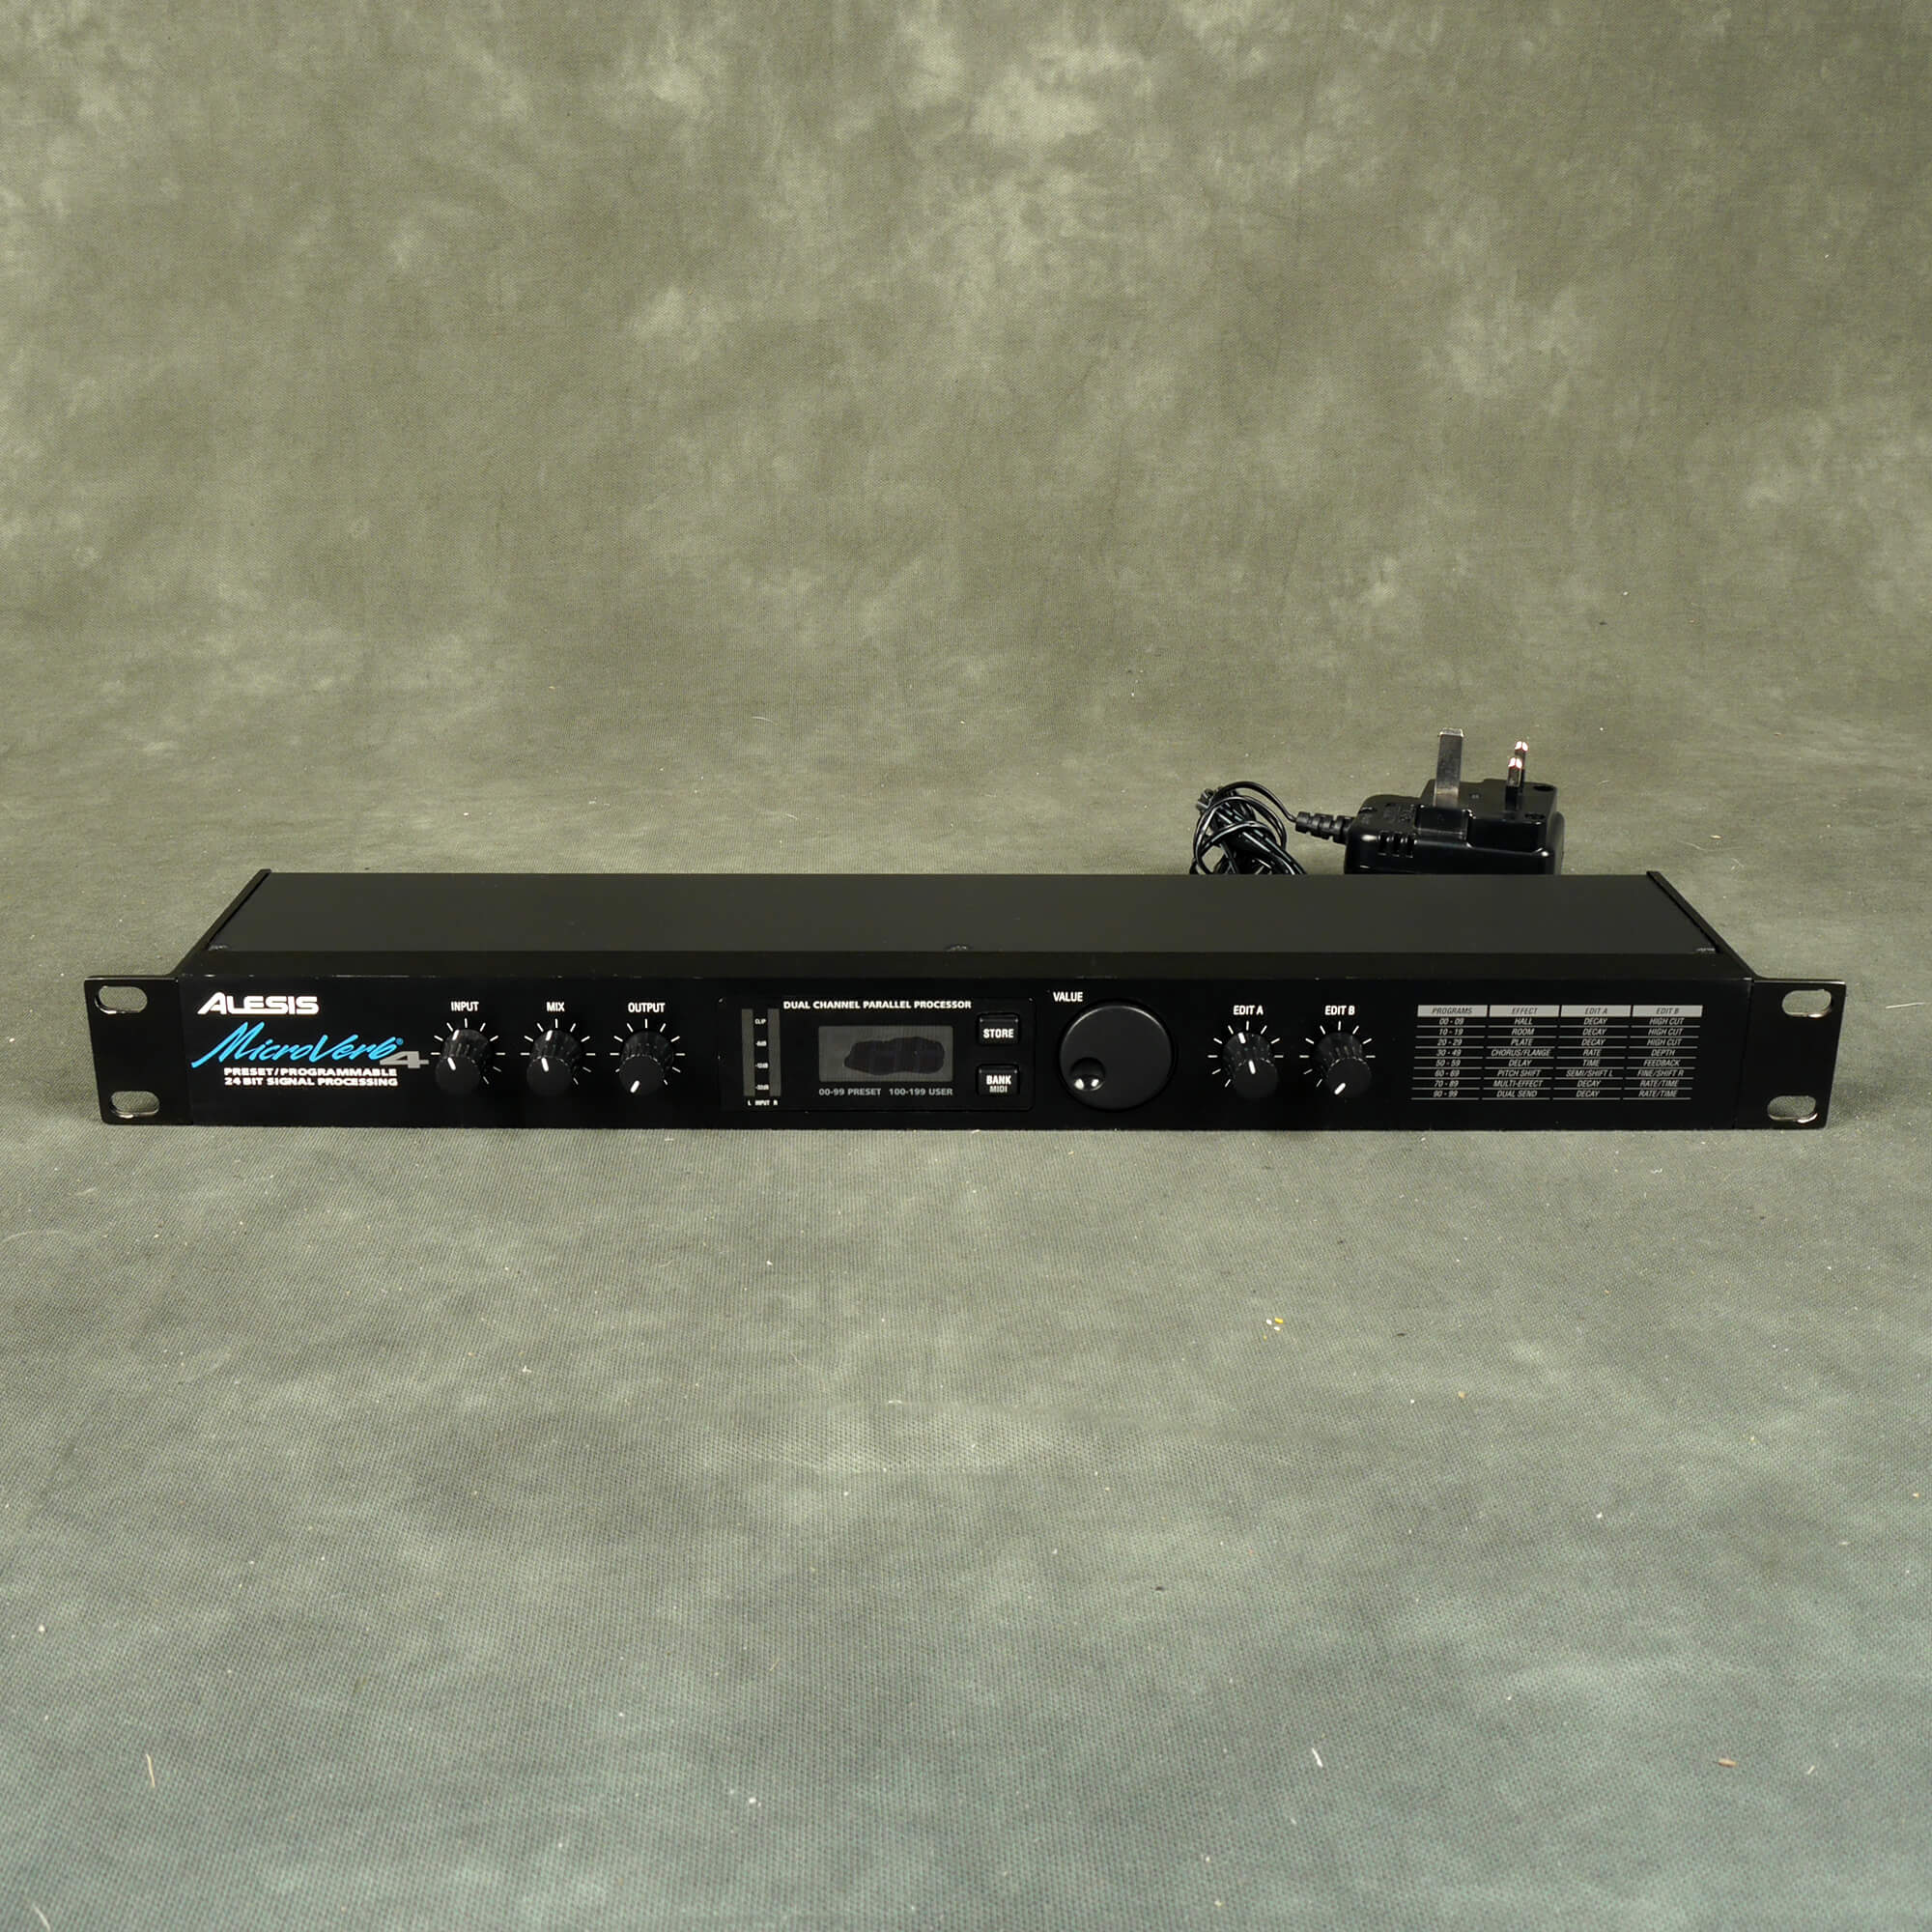 Alesis Microverb 4 Multi FX Rack Unit - 2nd Hand